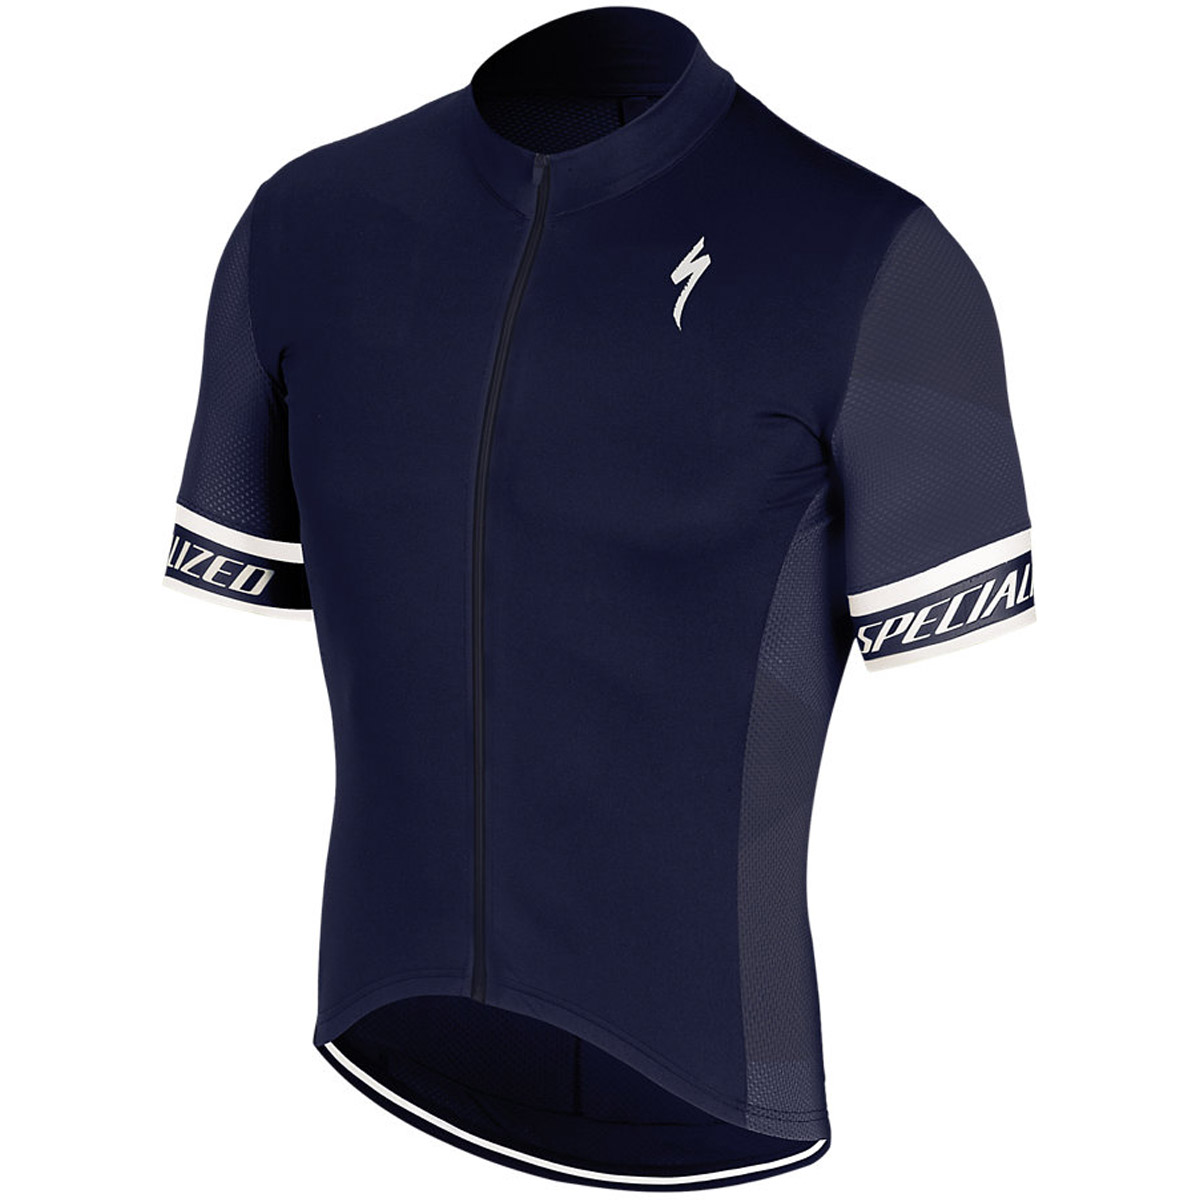 Specialized SL Elite trikot 2019 - Blau Weiss